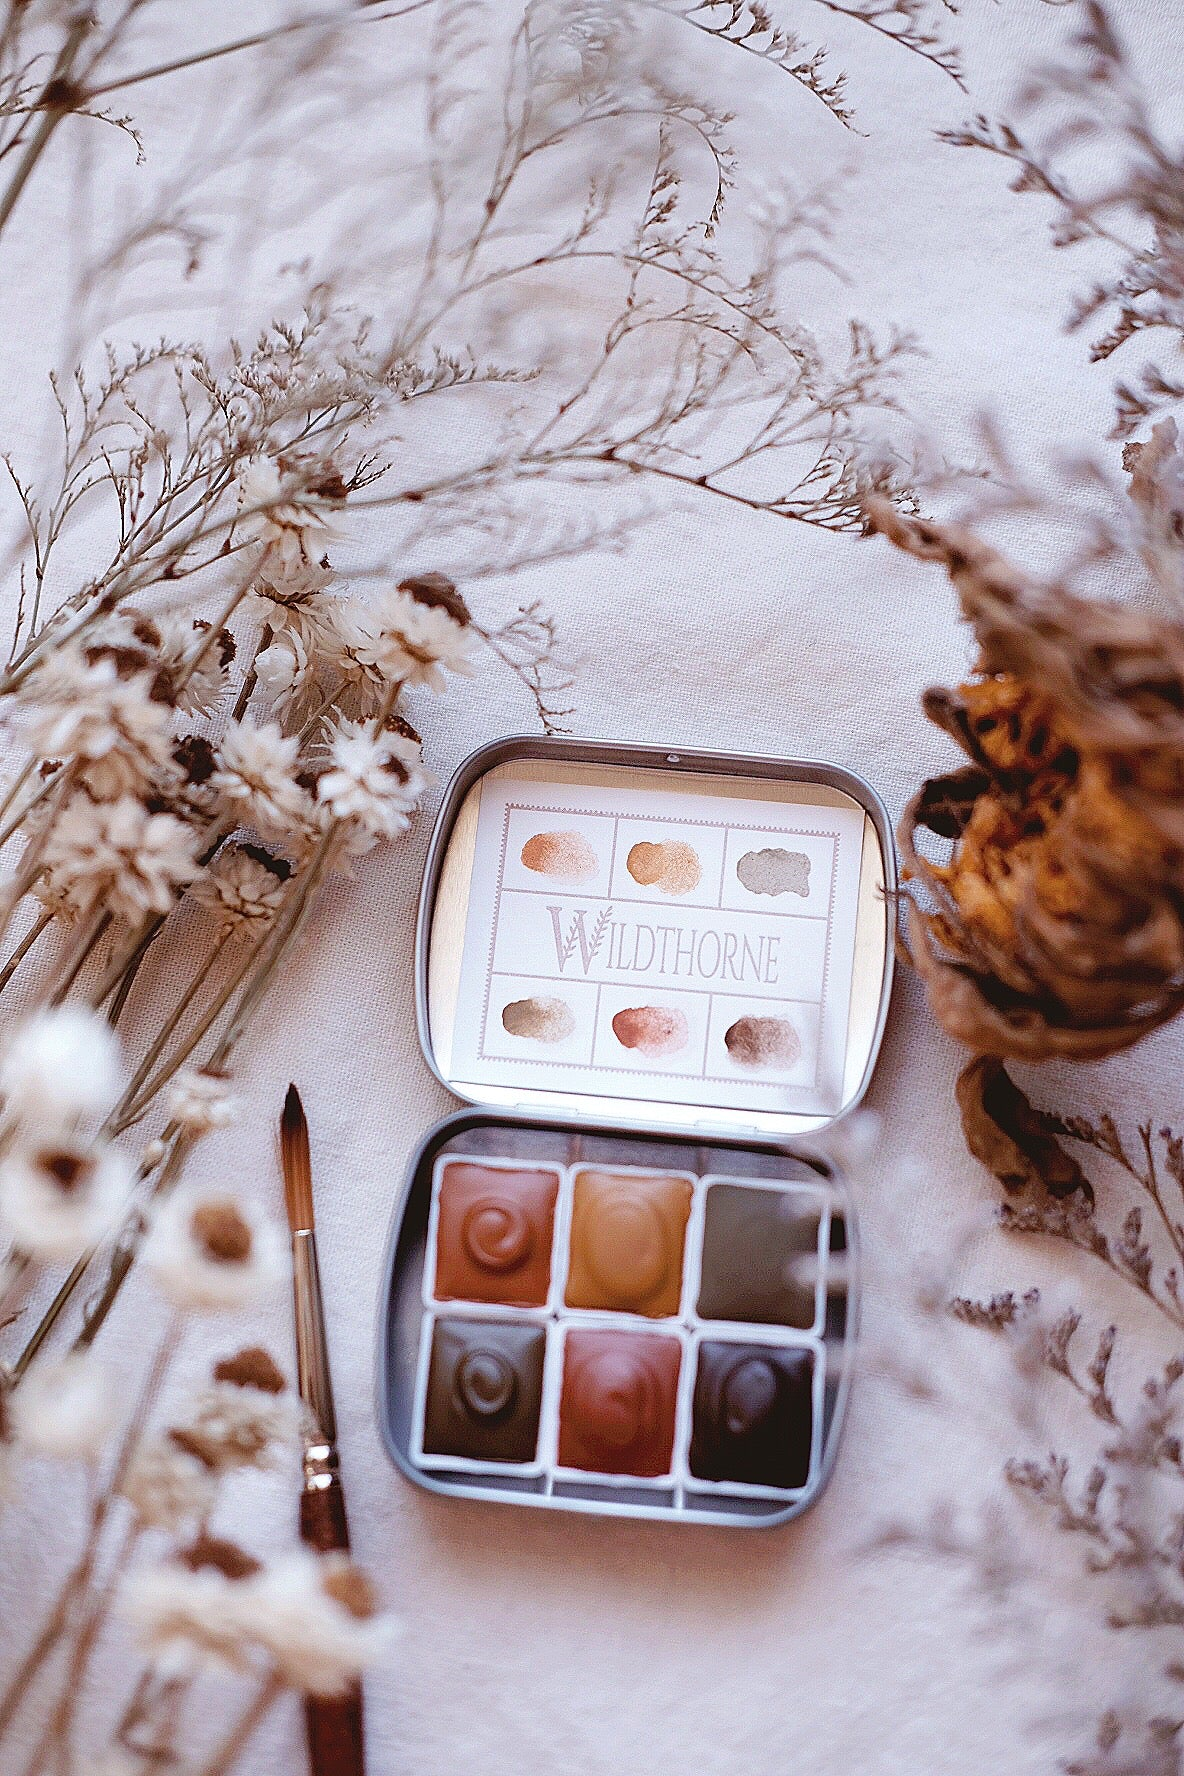 RESERVE for Jeannie + Chypre + earthy natural mineral watercolor palette. Payment 2 of 2